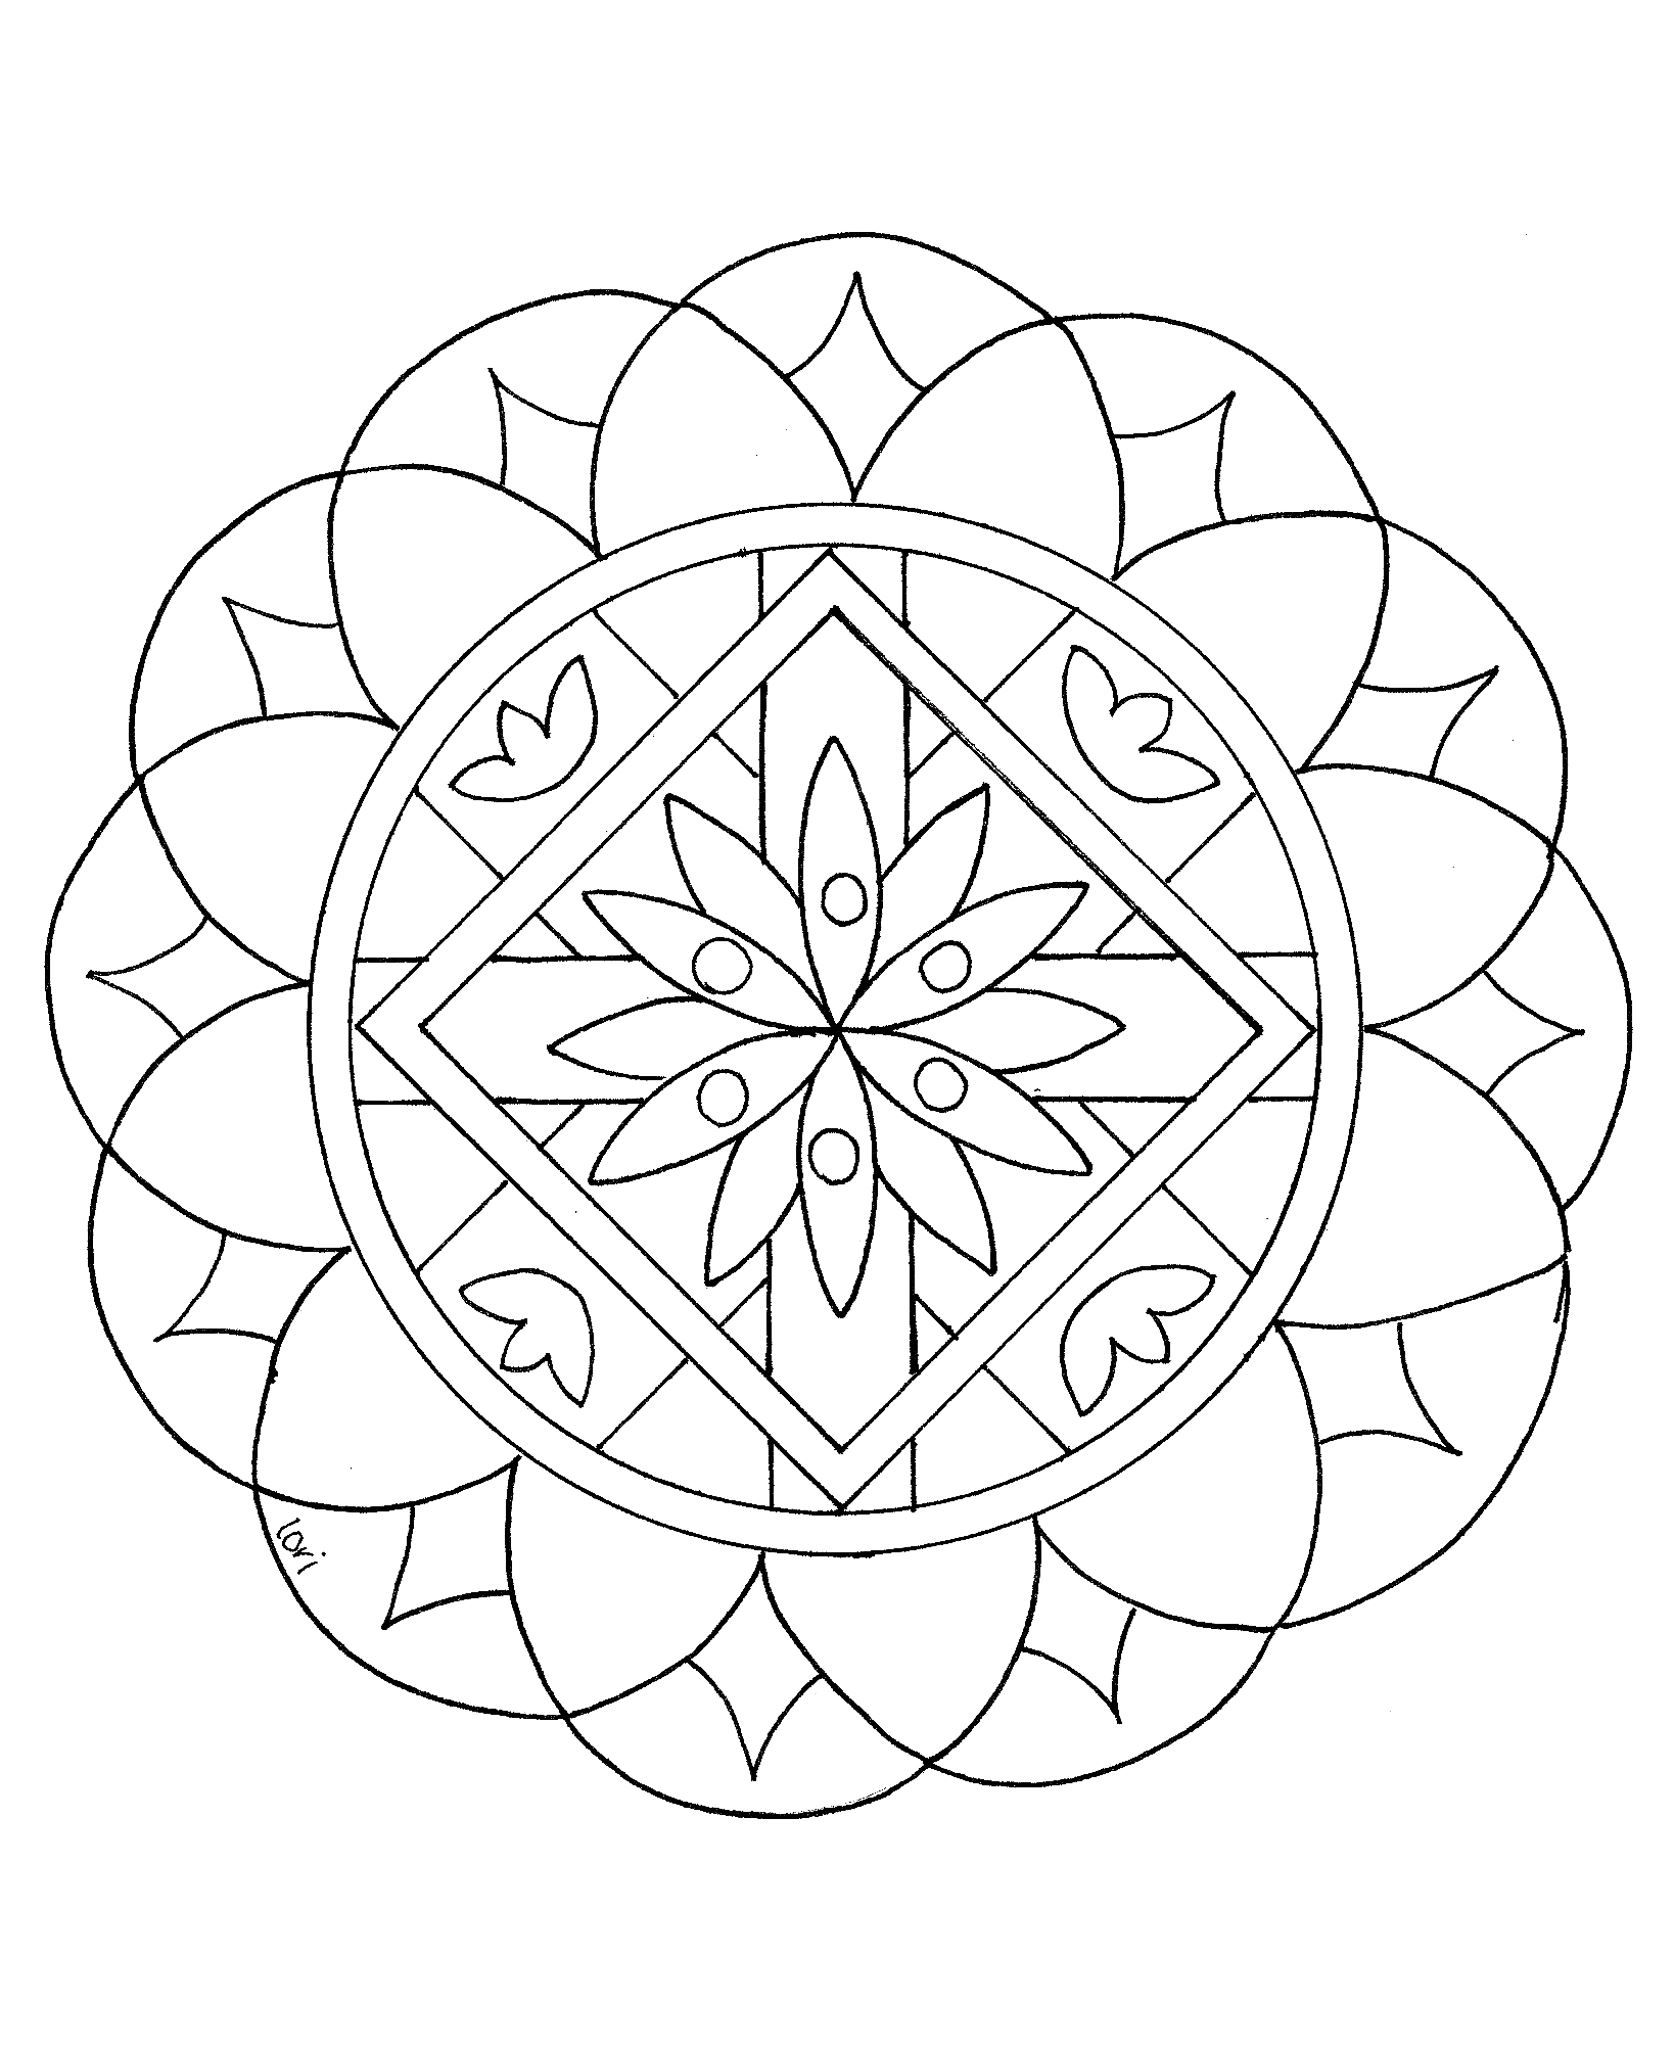 Mandalas for Kids is part of Mandalas for kids, Simple mandala, Mandala coloring, Easy mandala drawing, Simple mandala design, Mandala drawing - Easy Mandala coloring pages are a great way to start your kids on the practice of meditation  These Mandalas for kids are cute, fun and easy to color  The Mandala is a representation of the universe in Buddhism and the Hindu religion  A Mandala is used as a focusing tool to connect spiritually to the …